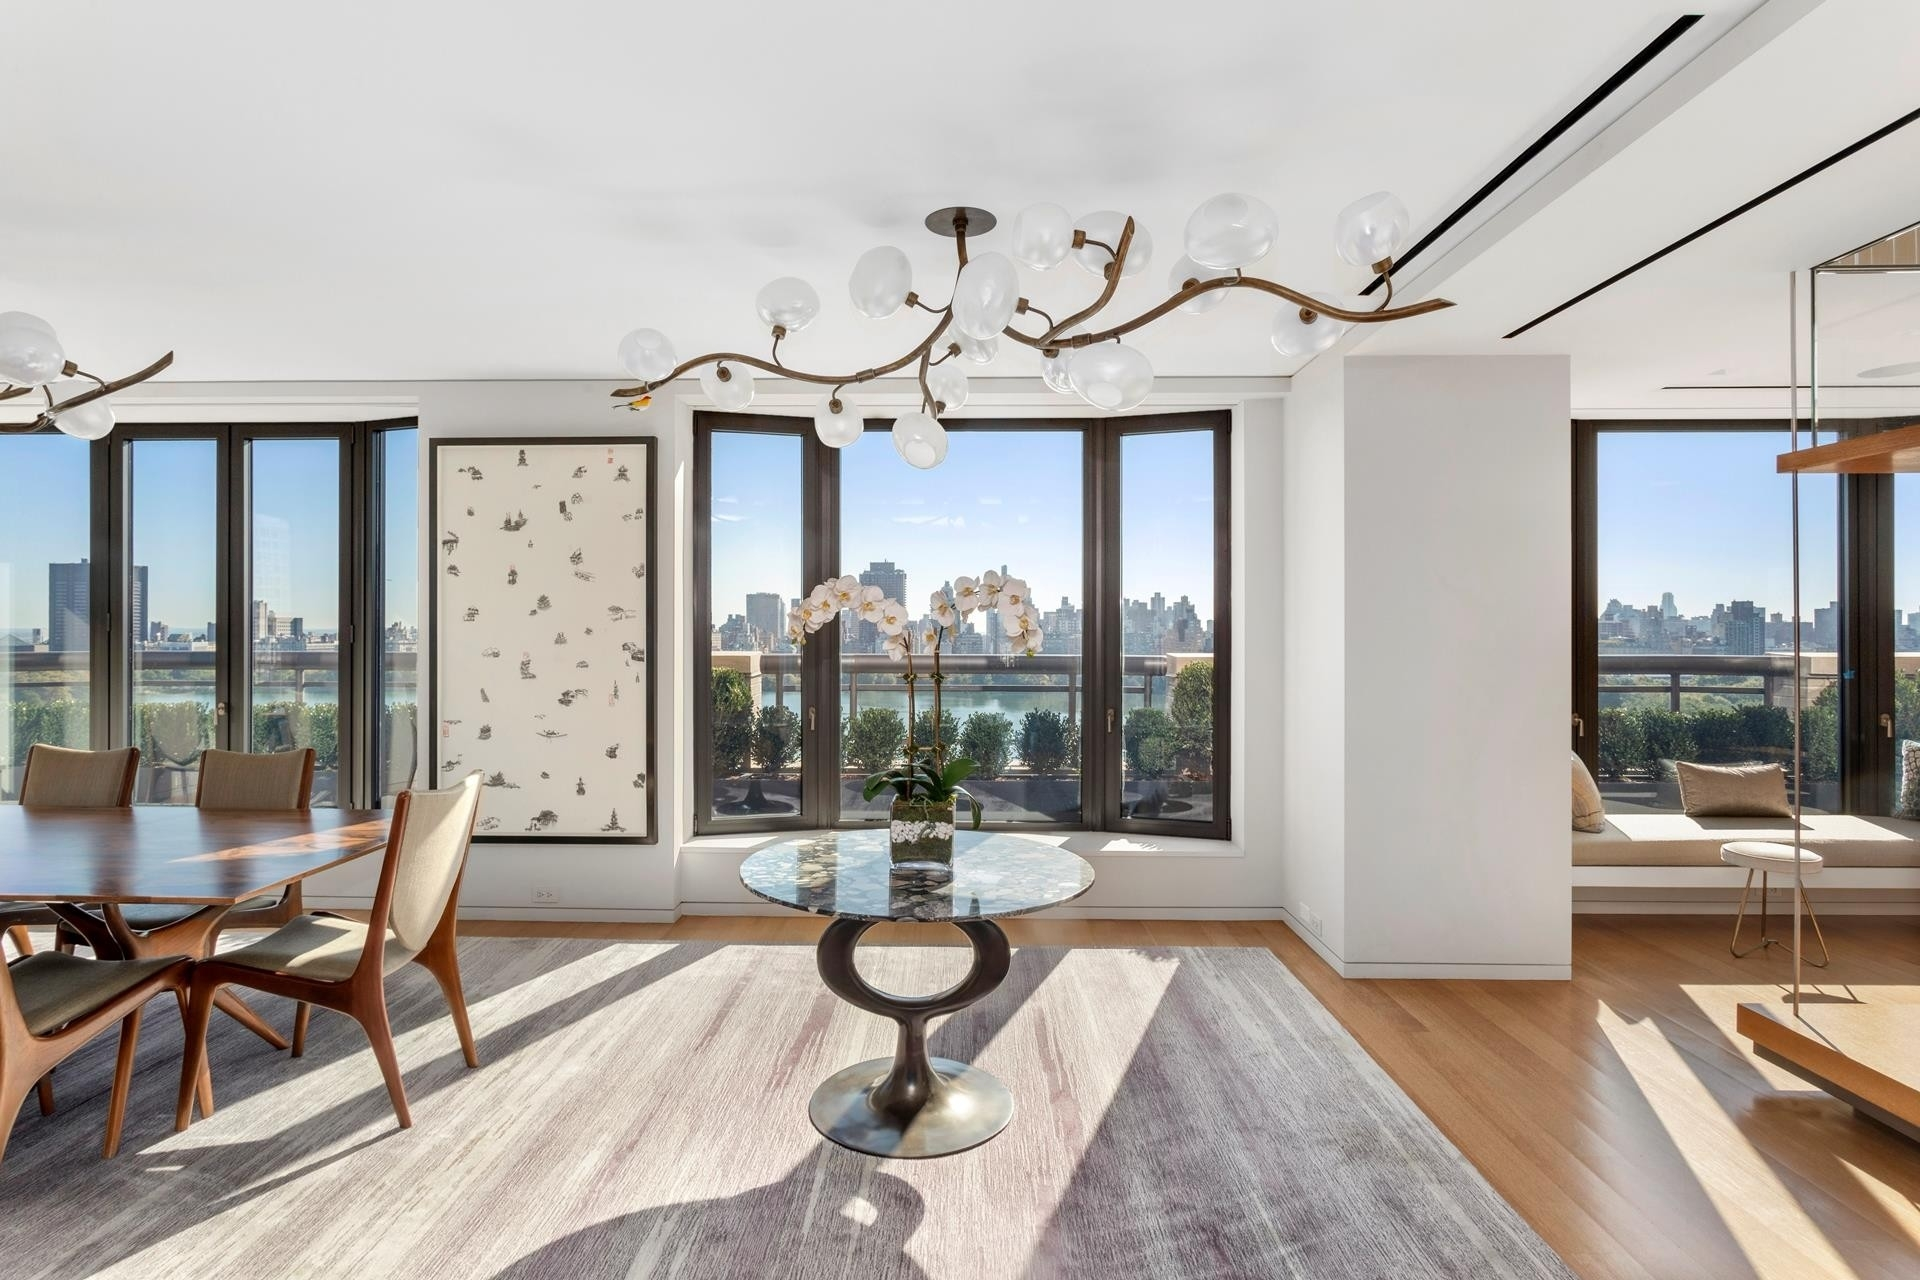 1. Condominiums for Sale at 279 CENTRAL PARK W, PHBA Upper West Side, New York, NY 10024